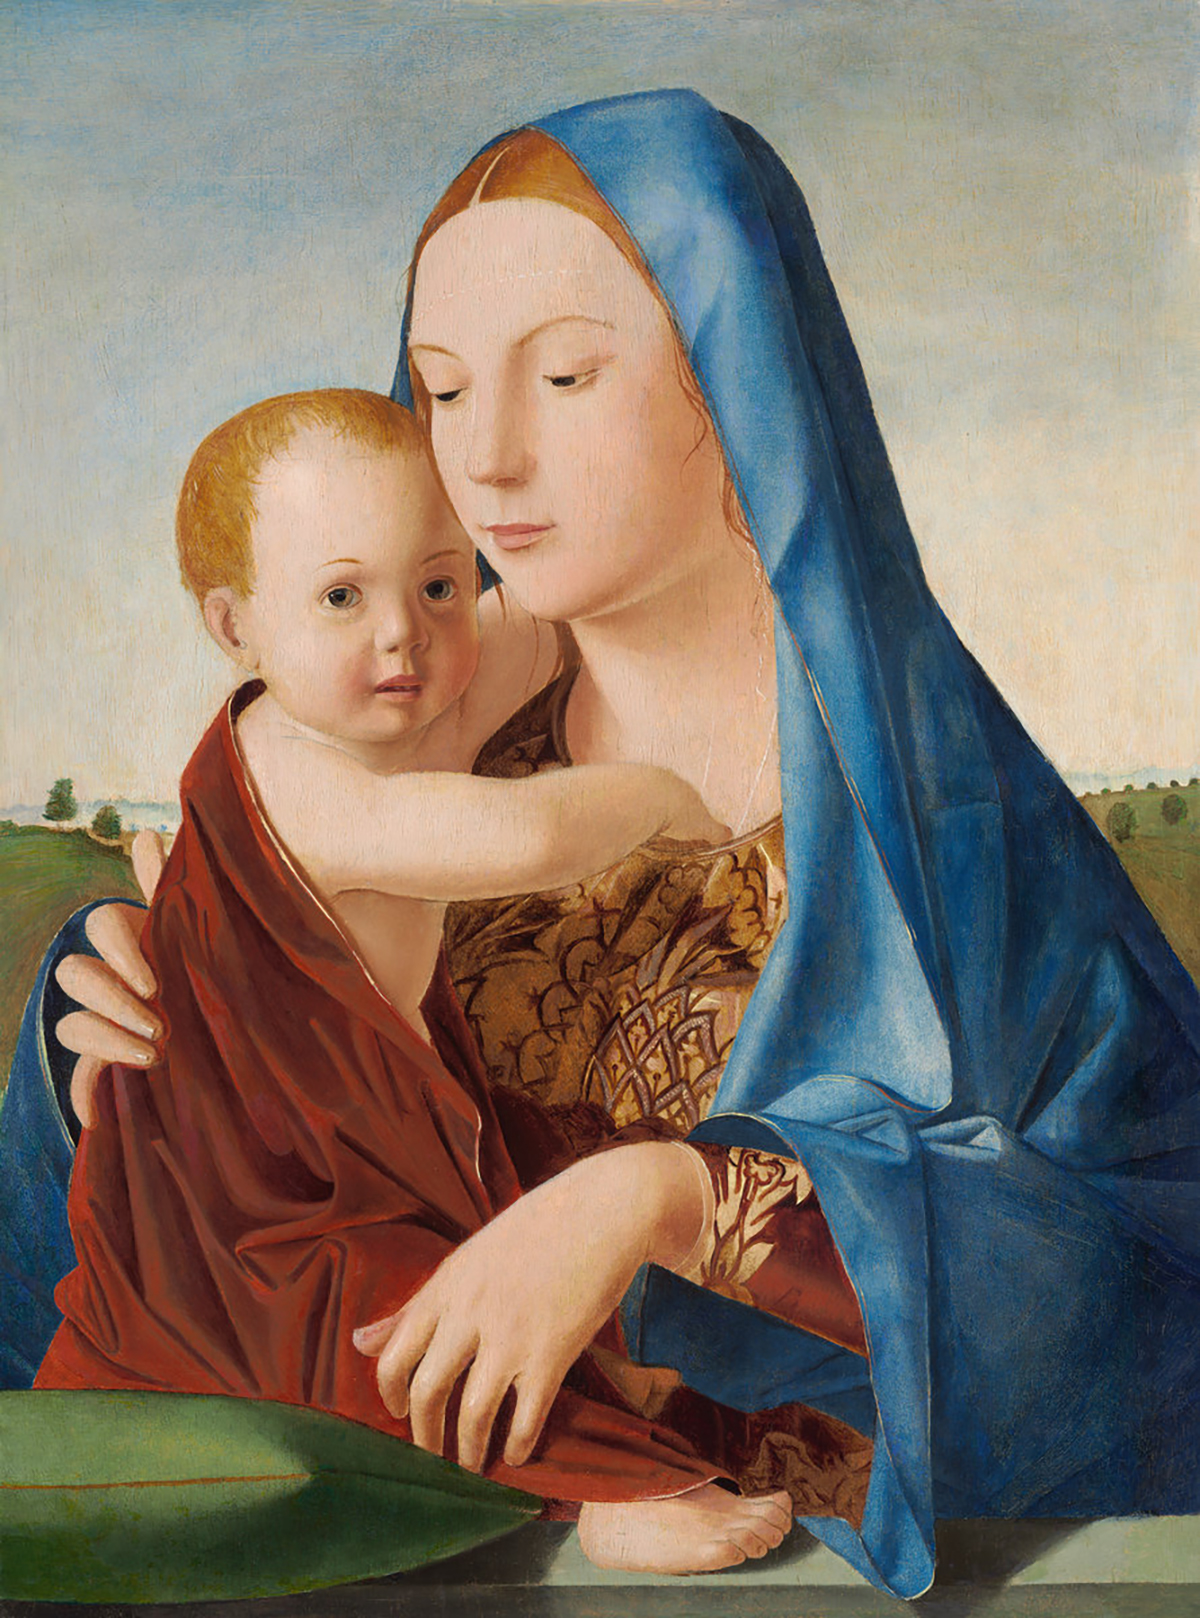 Antonello Da Messina's Madonna With The Child (1475)